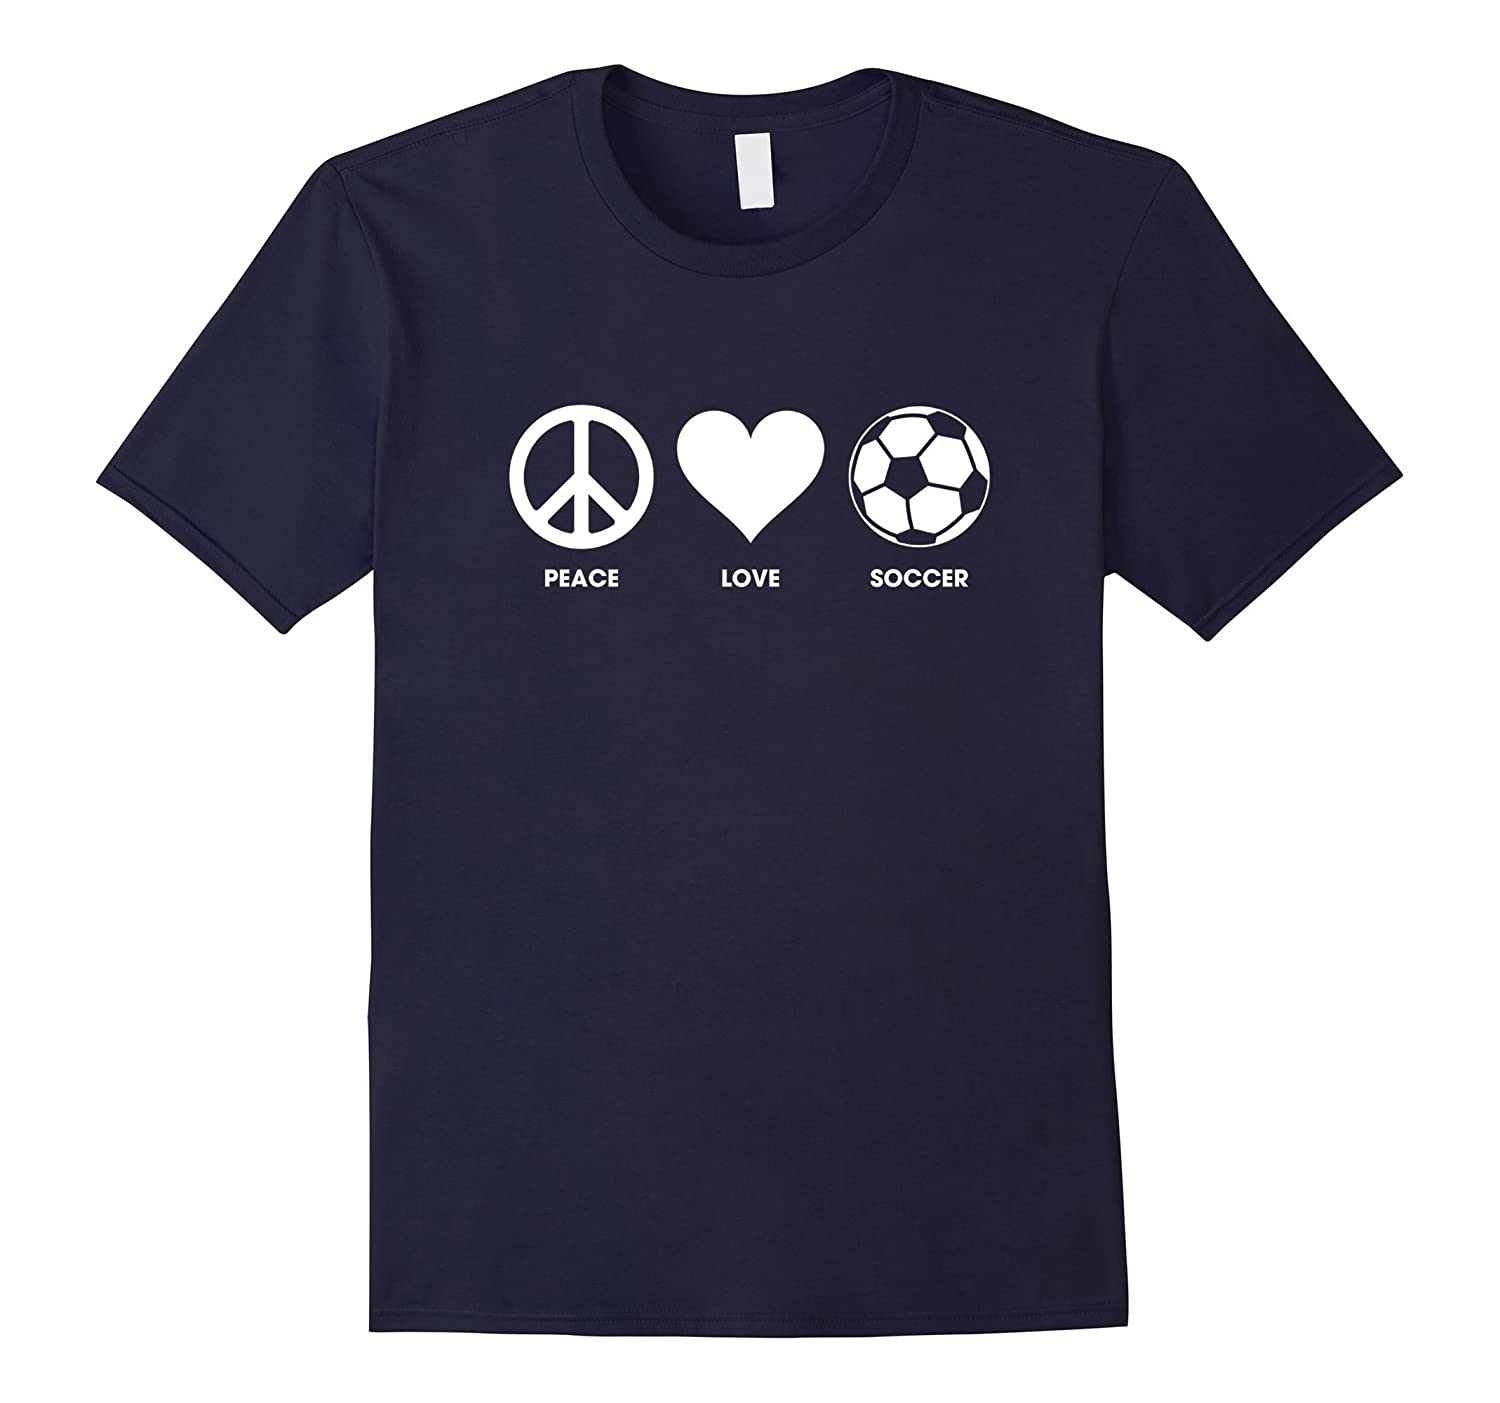 Peace Love Soccer T-shirts - Shirts for Soccer Players-RT